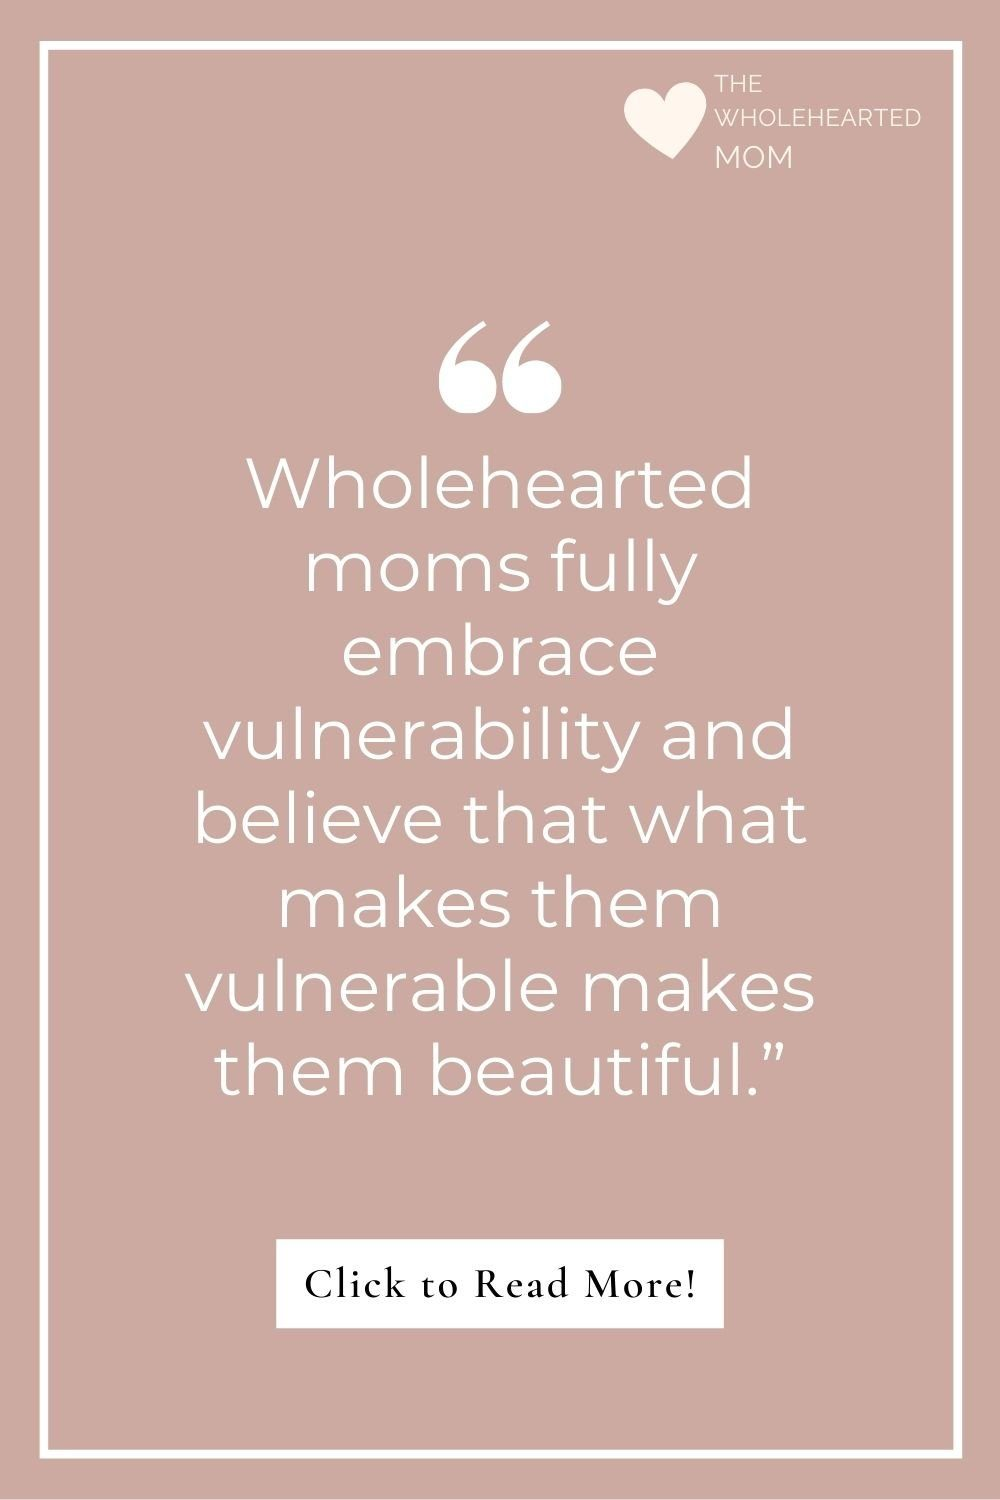 Wholehearted moms fully embrace vulnerability and know their worth - brene brown quote